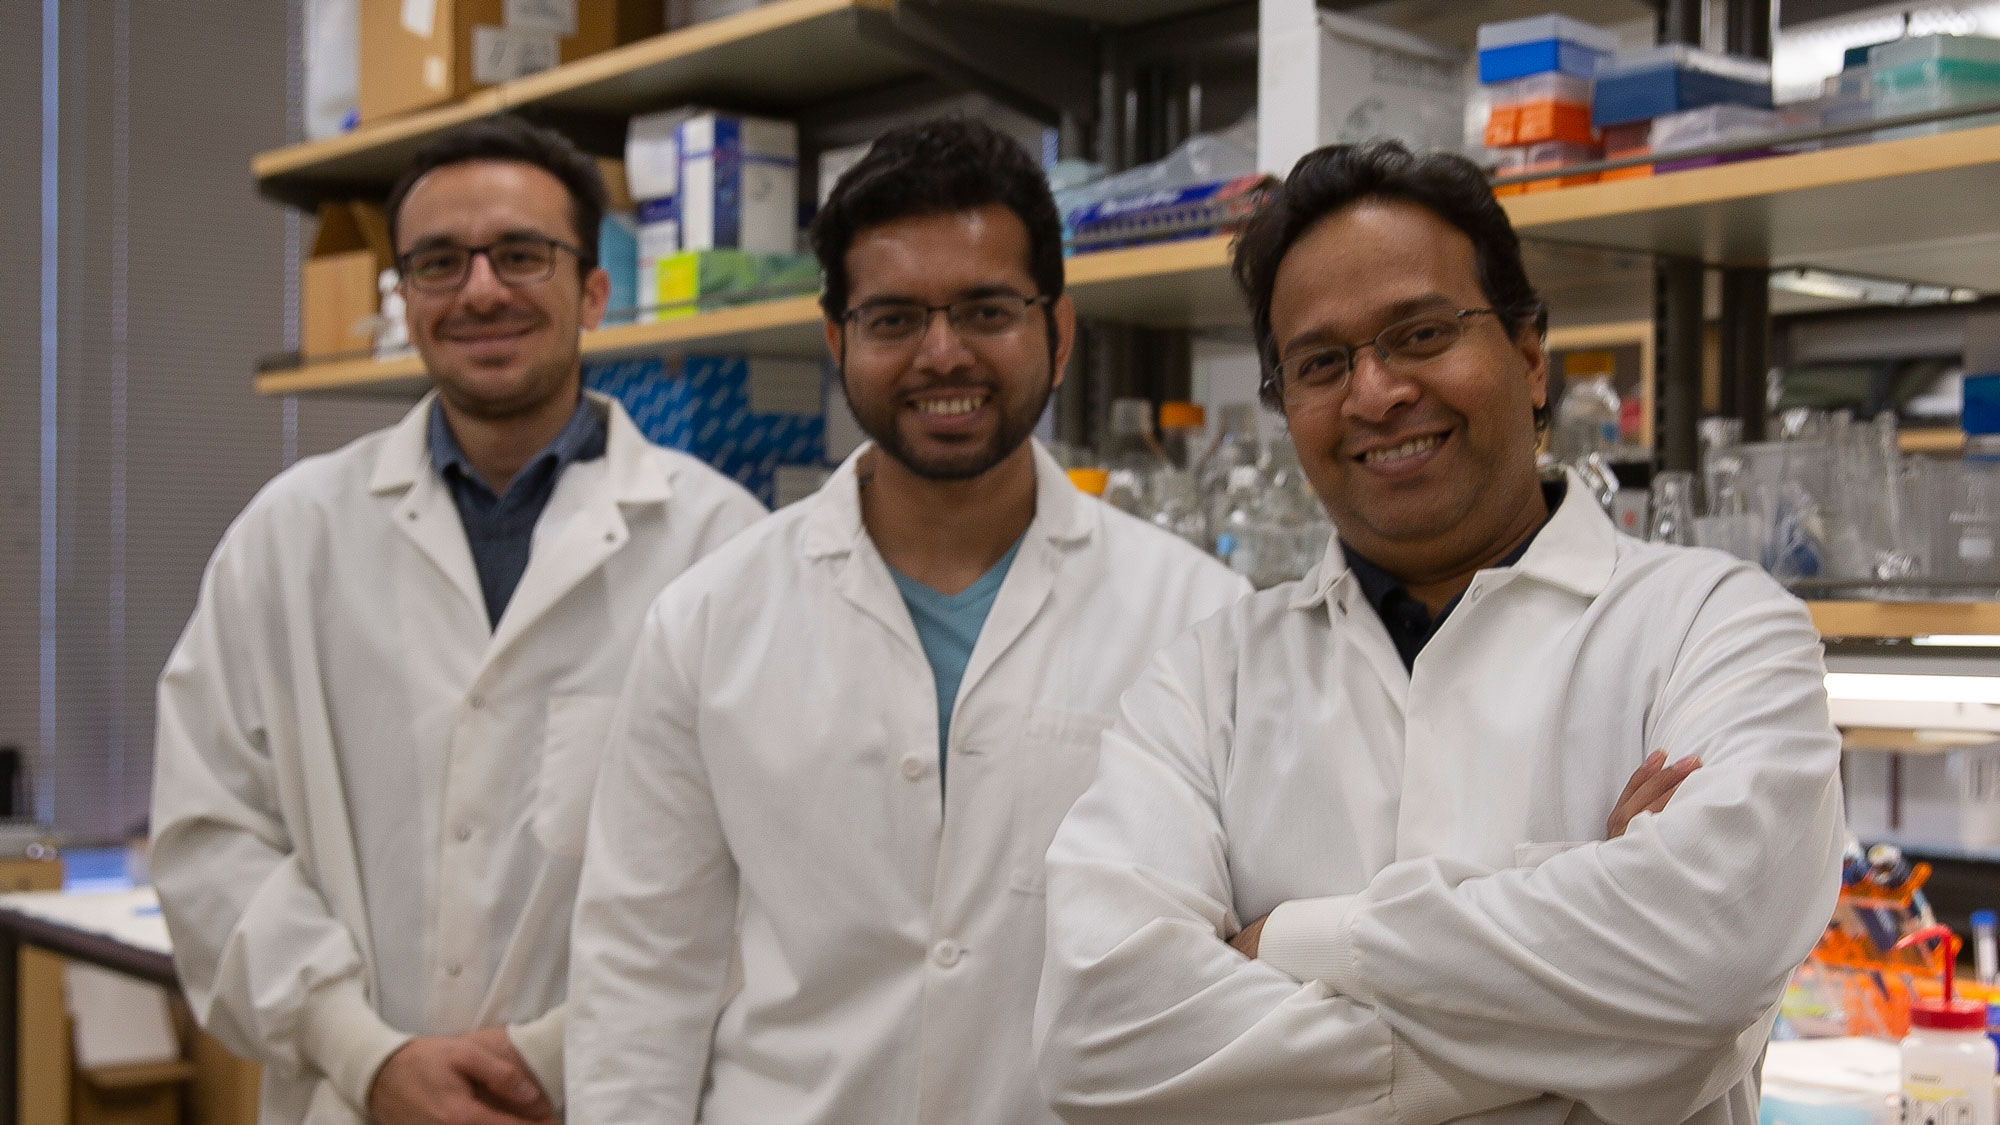 Vikram Kodibagkar stands with his two graduate students in the lab, all smiling and in lab coats.